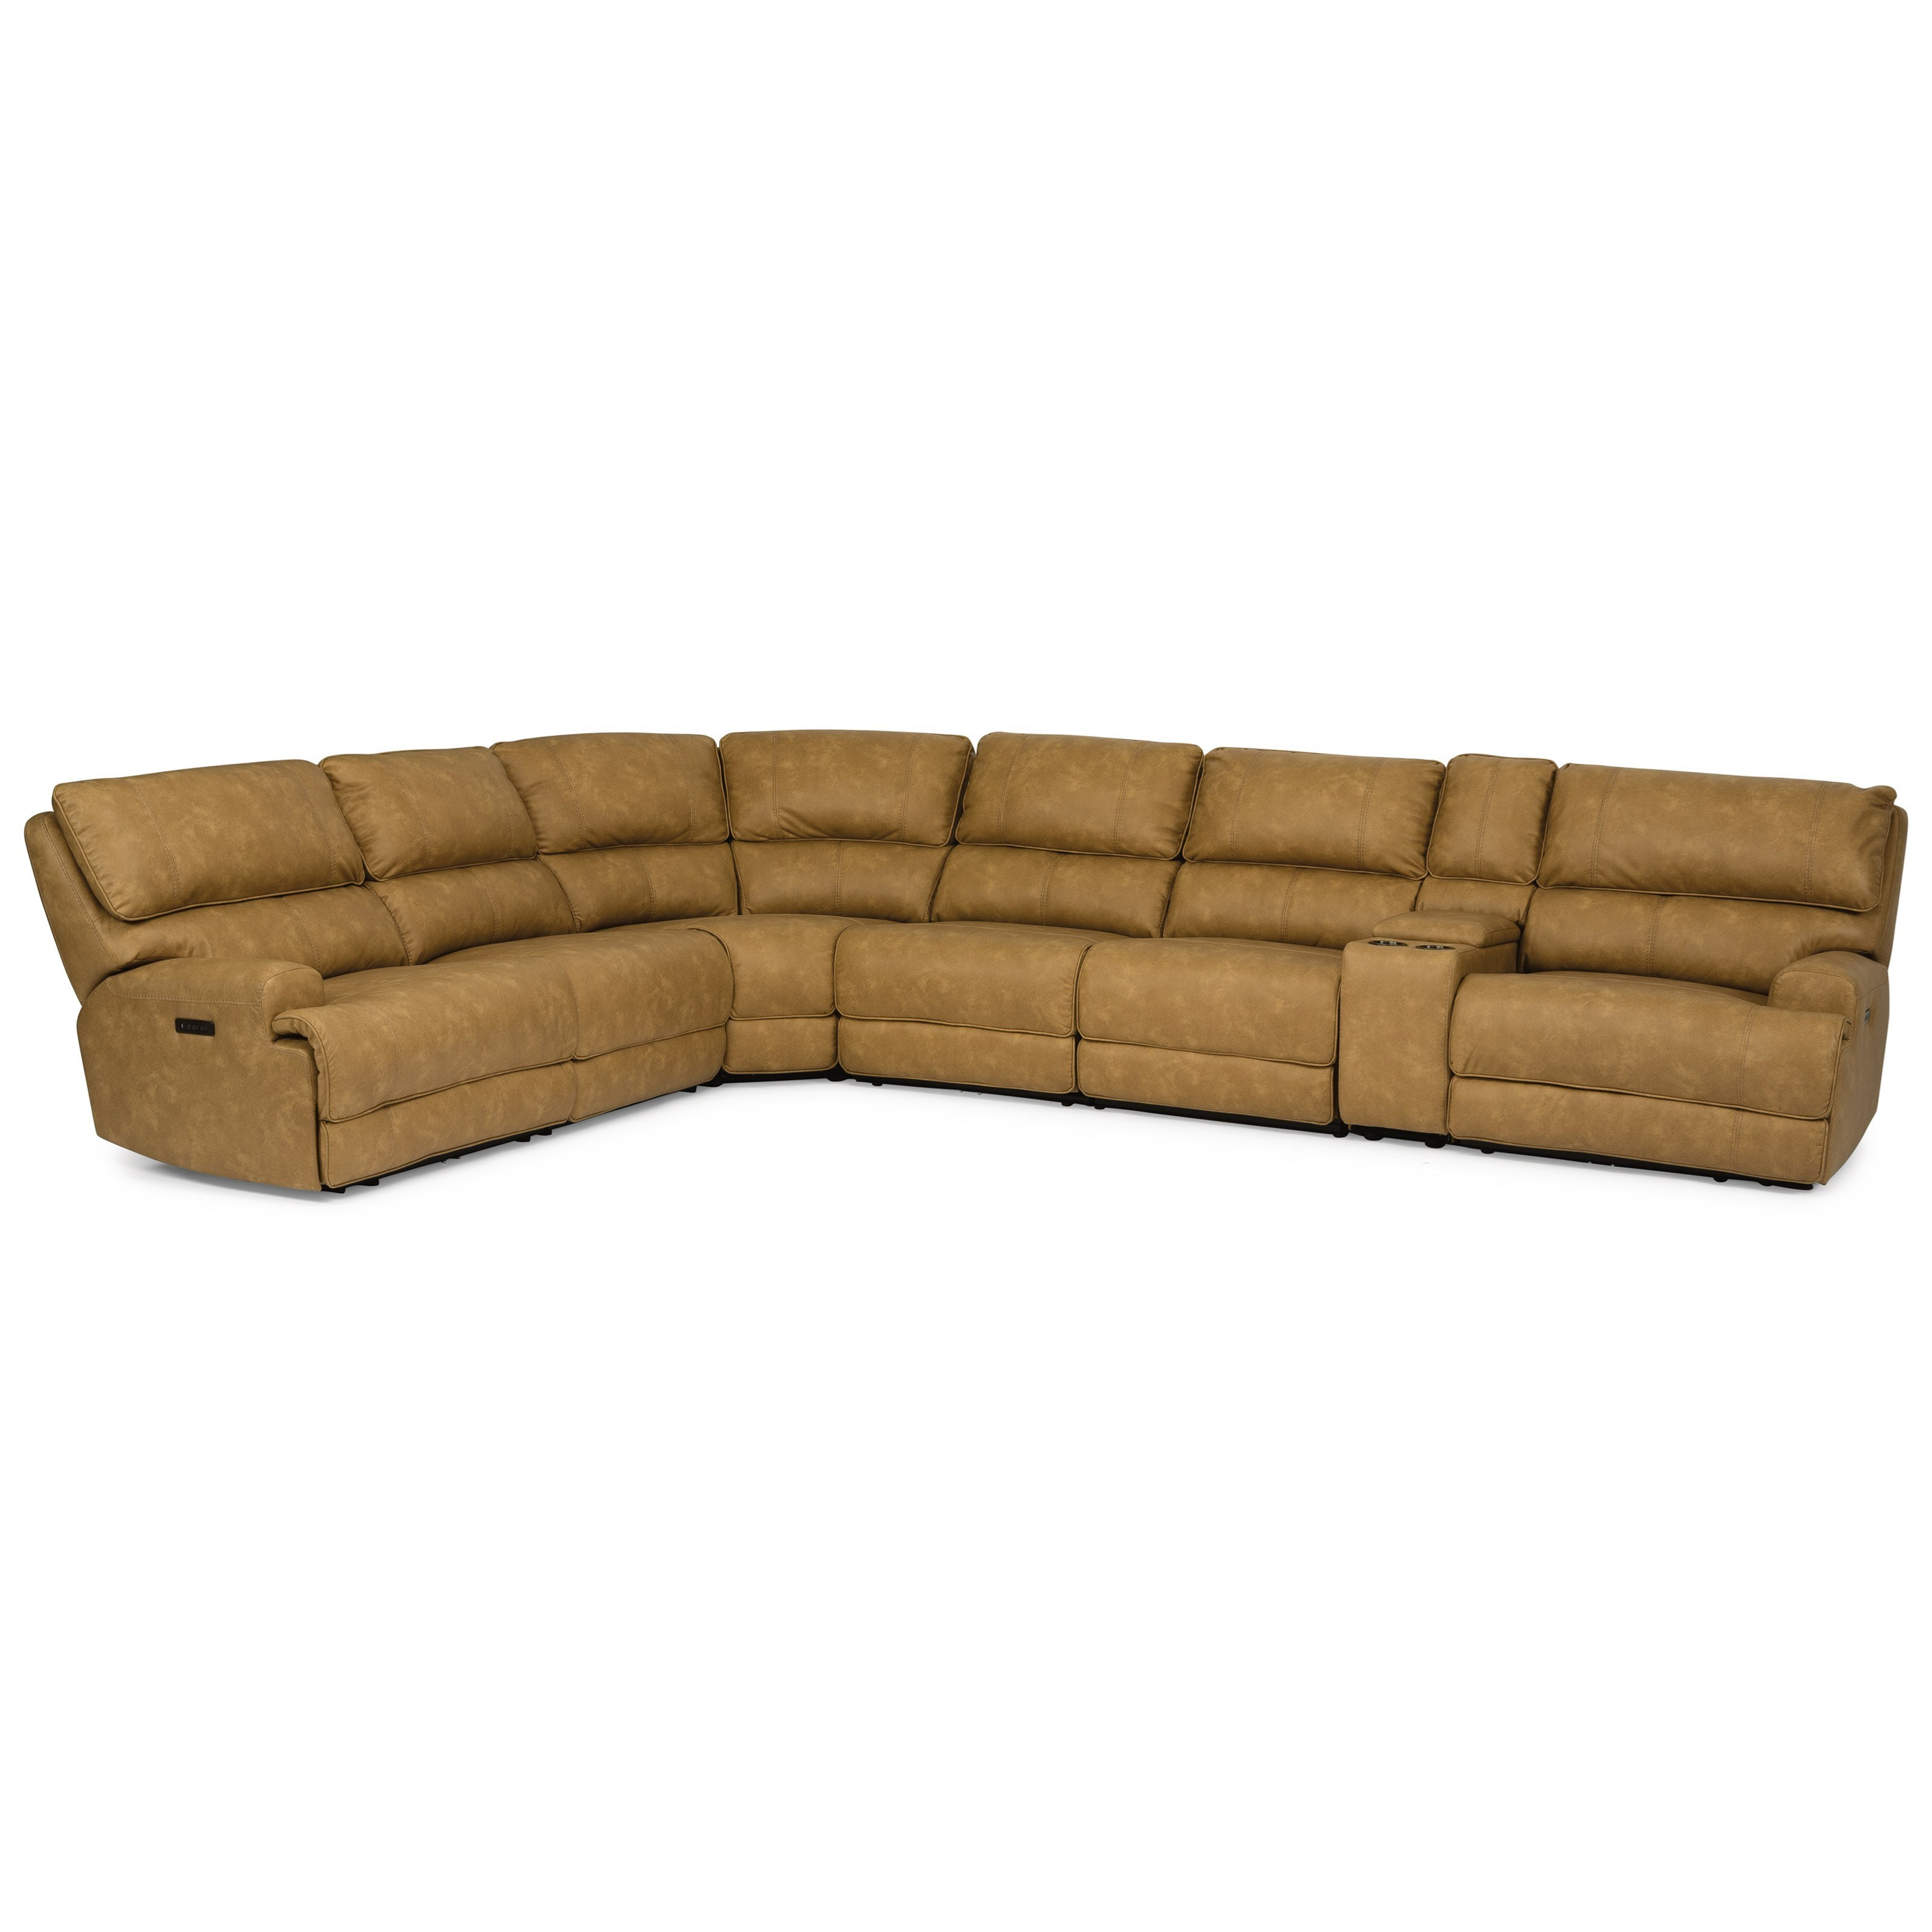 Latitudes - Floyd 7-Piece Power Sectional by Flexsteel at Walker's Furniture